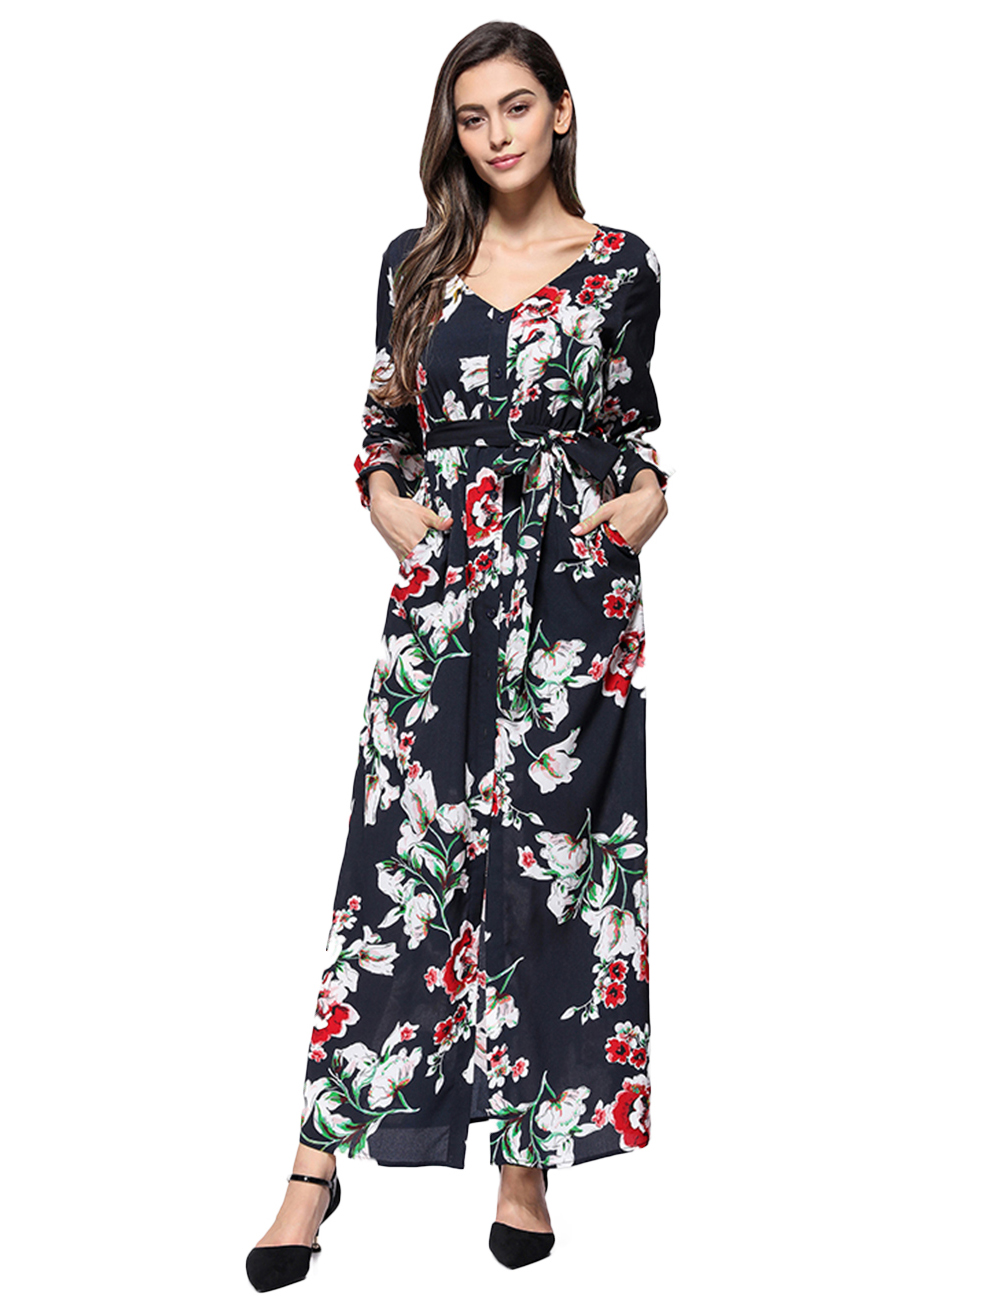 //cdn.affectcloud.com/feelingirldress/upload/imgs/2019-06-04/VZ190459-M04/VZ190459-M04.jpg